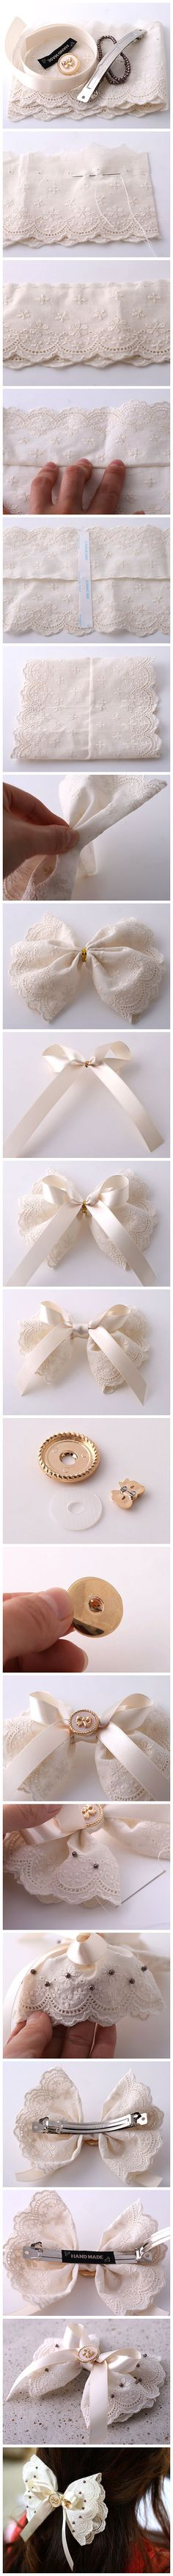 Cute hair bow DIY!                                                                                                                                                                                 Mais